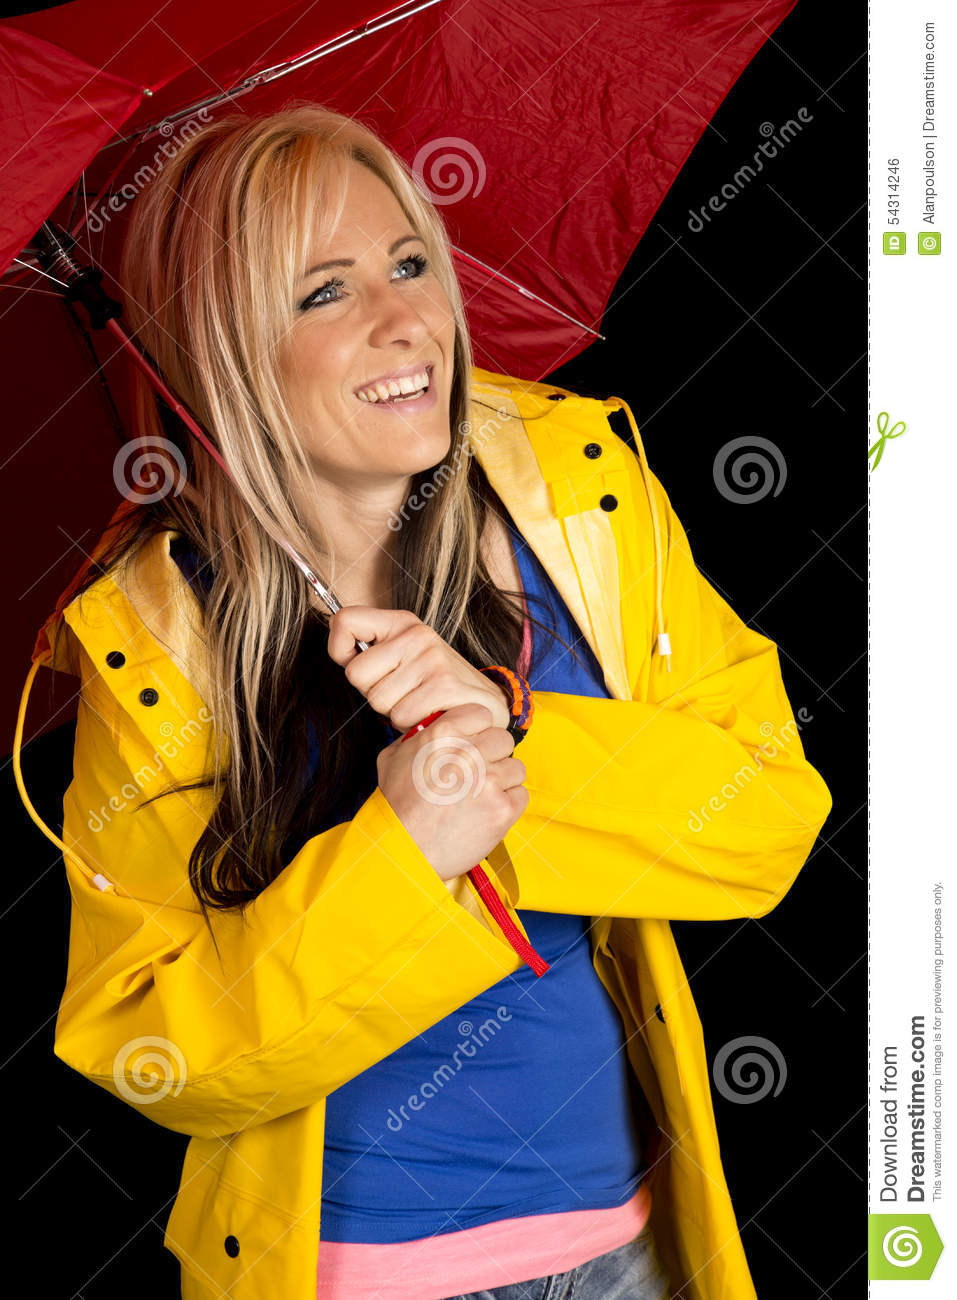 Woman red umbrella and yellow jacket happy